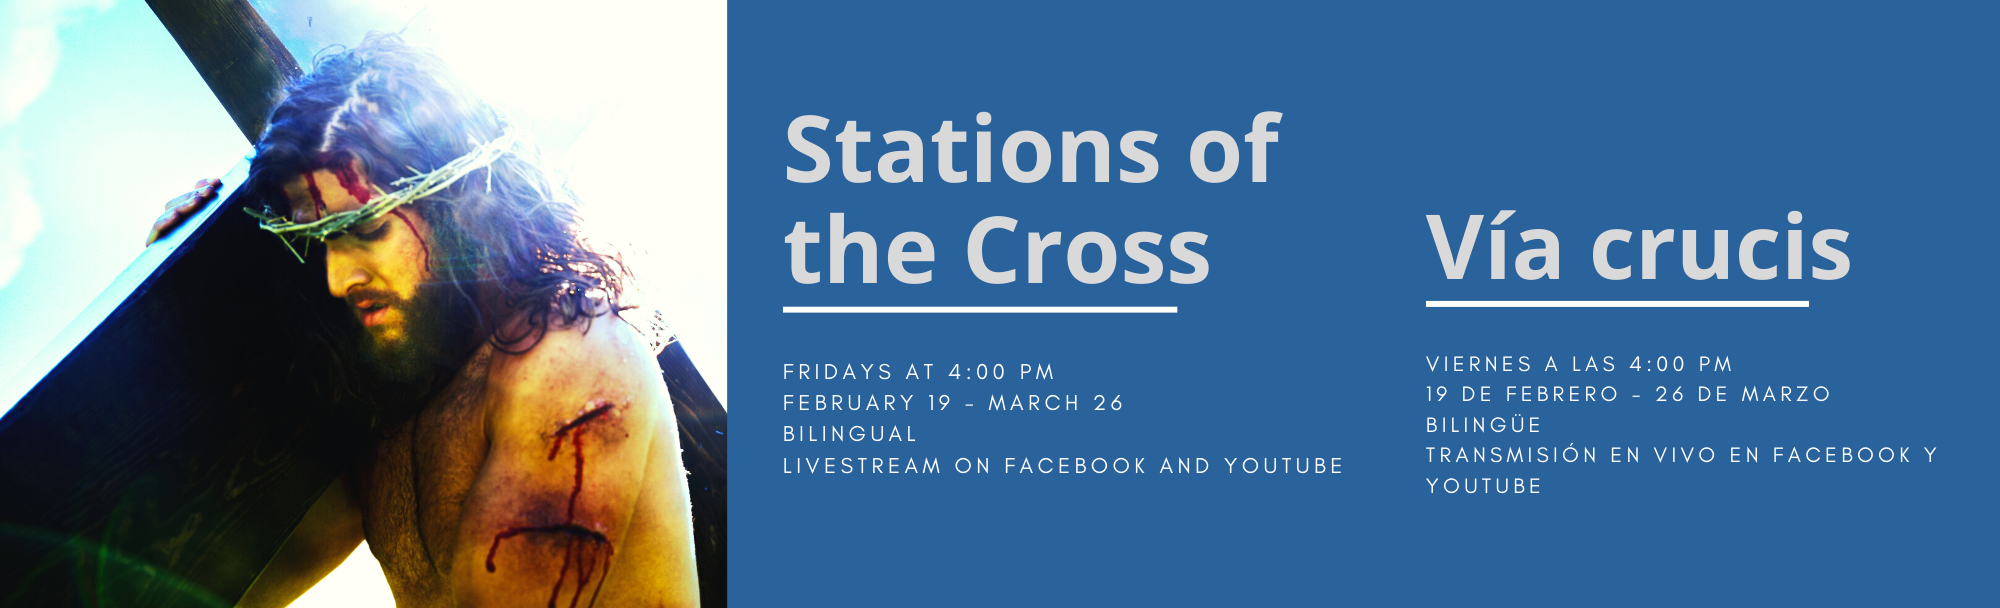 Stations Of The Cross Home Page